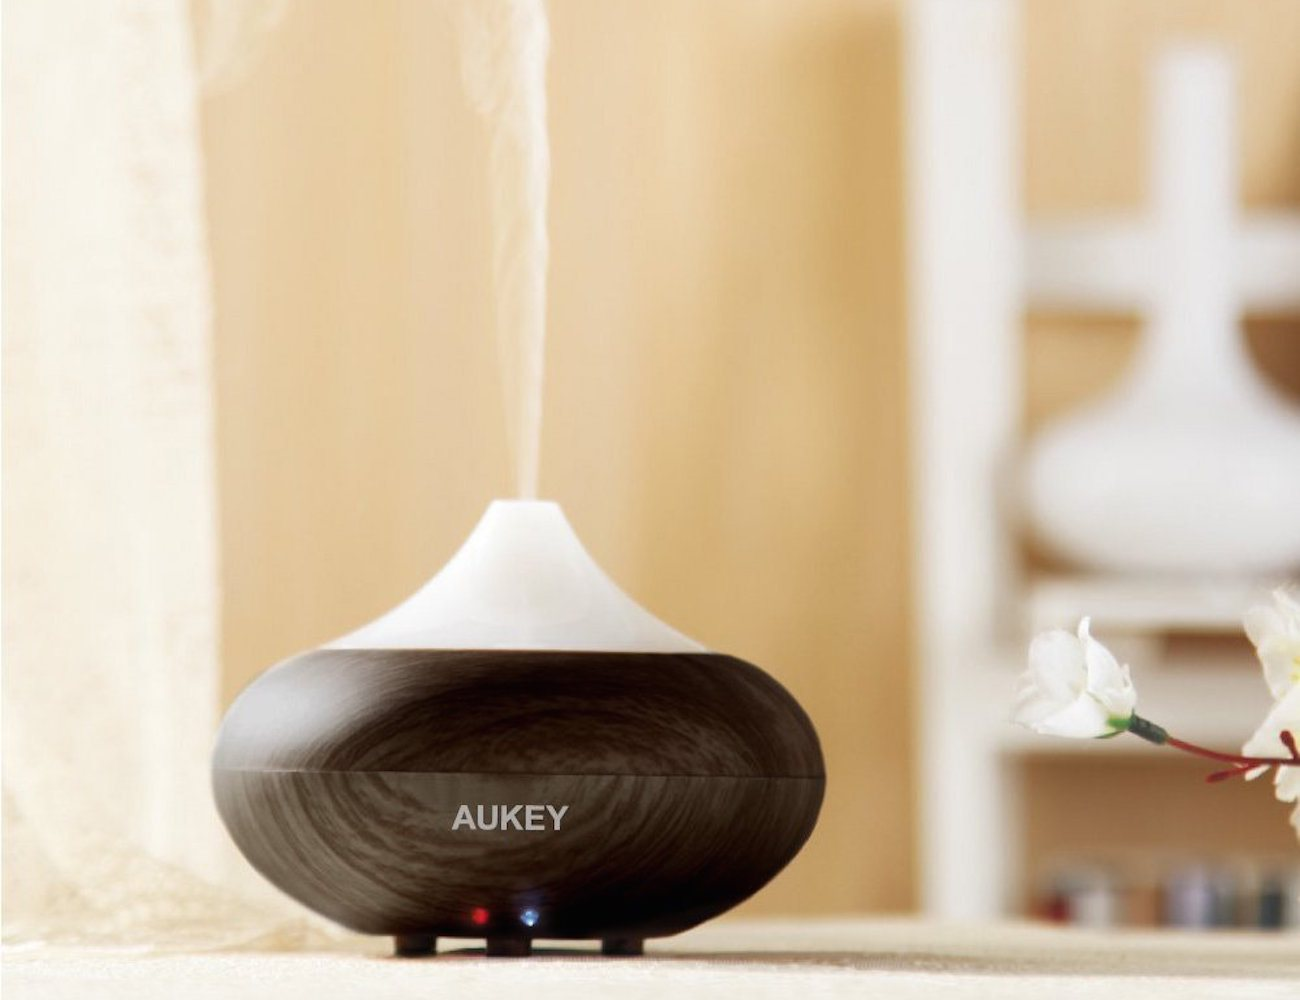 Aukey Electric Aromatherapy Essential Oil Diffuser